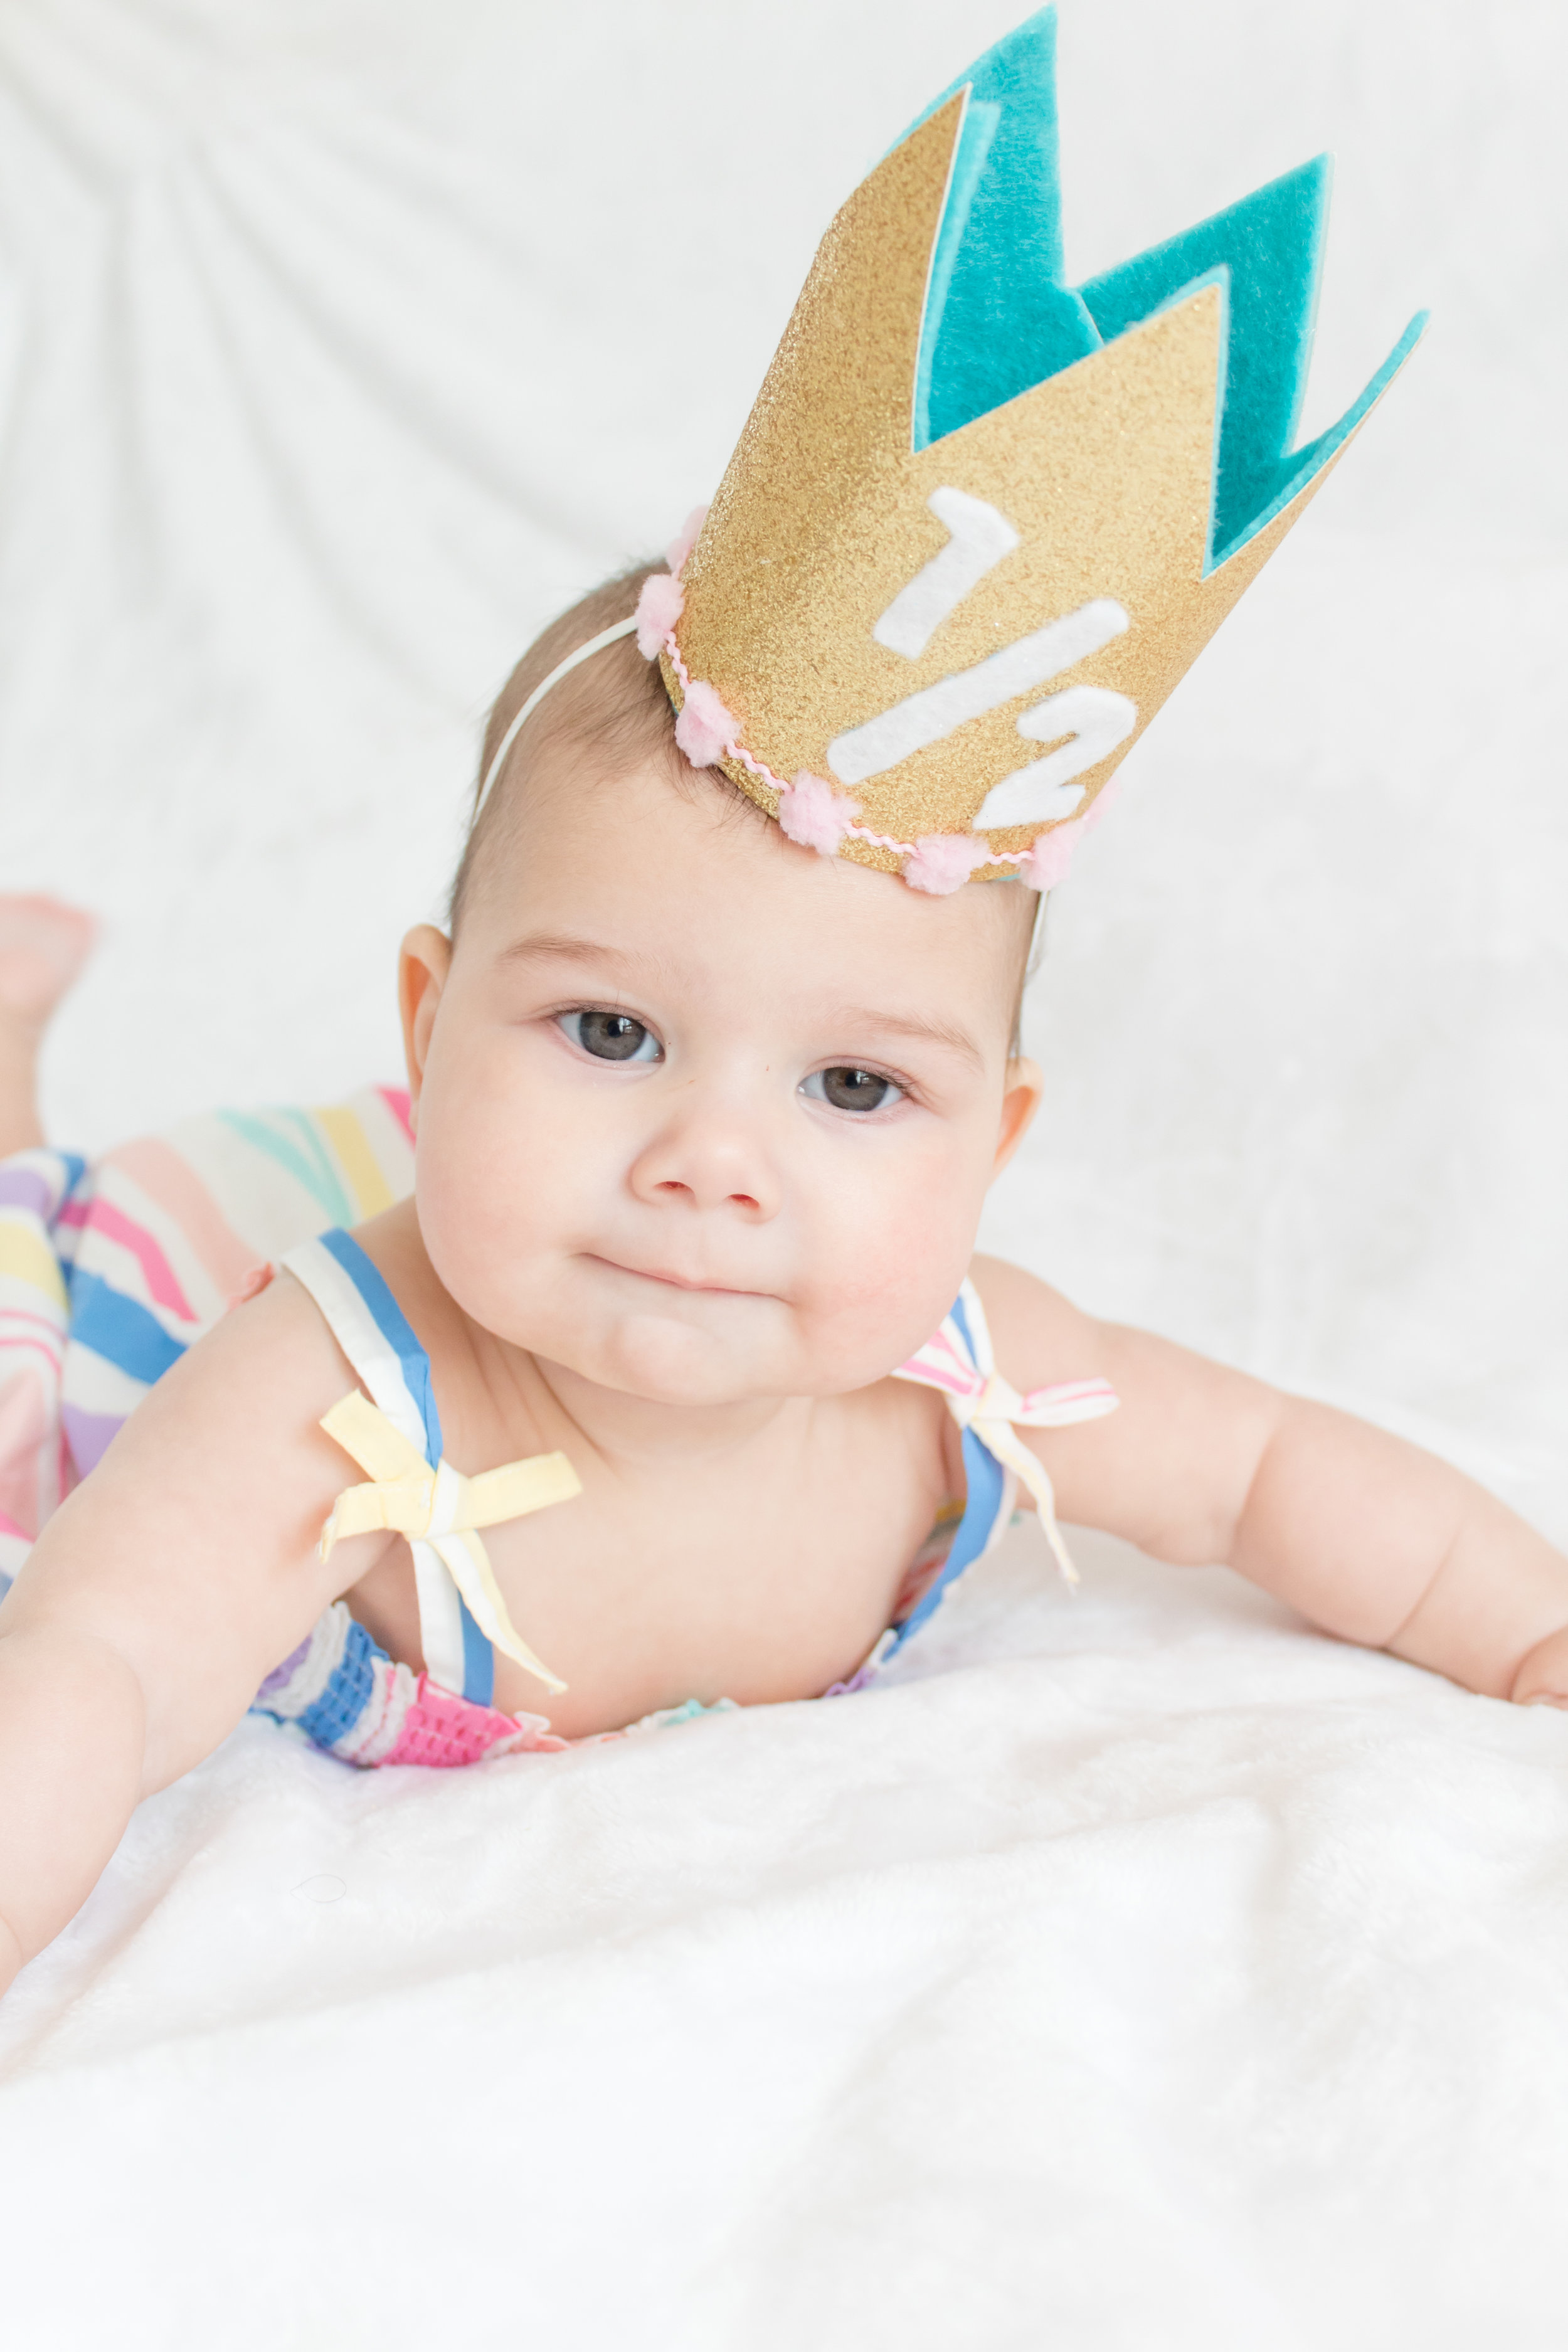 Everyone's birthday is better with a crown! This DIY glitter birthday crown is super easy to make and even includes a free template. Whip one up, then get your camera ready – your baby it's gonna look amazing! Click for the full DIY and the free printable. #DIYCrown #BirthdayCrown #firstBirthday